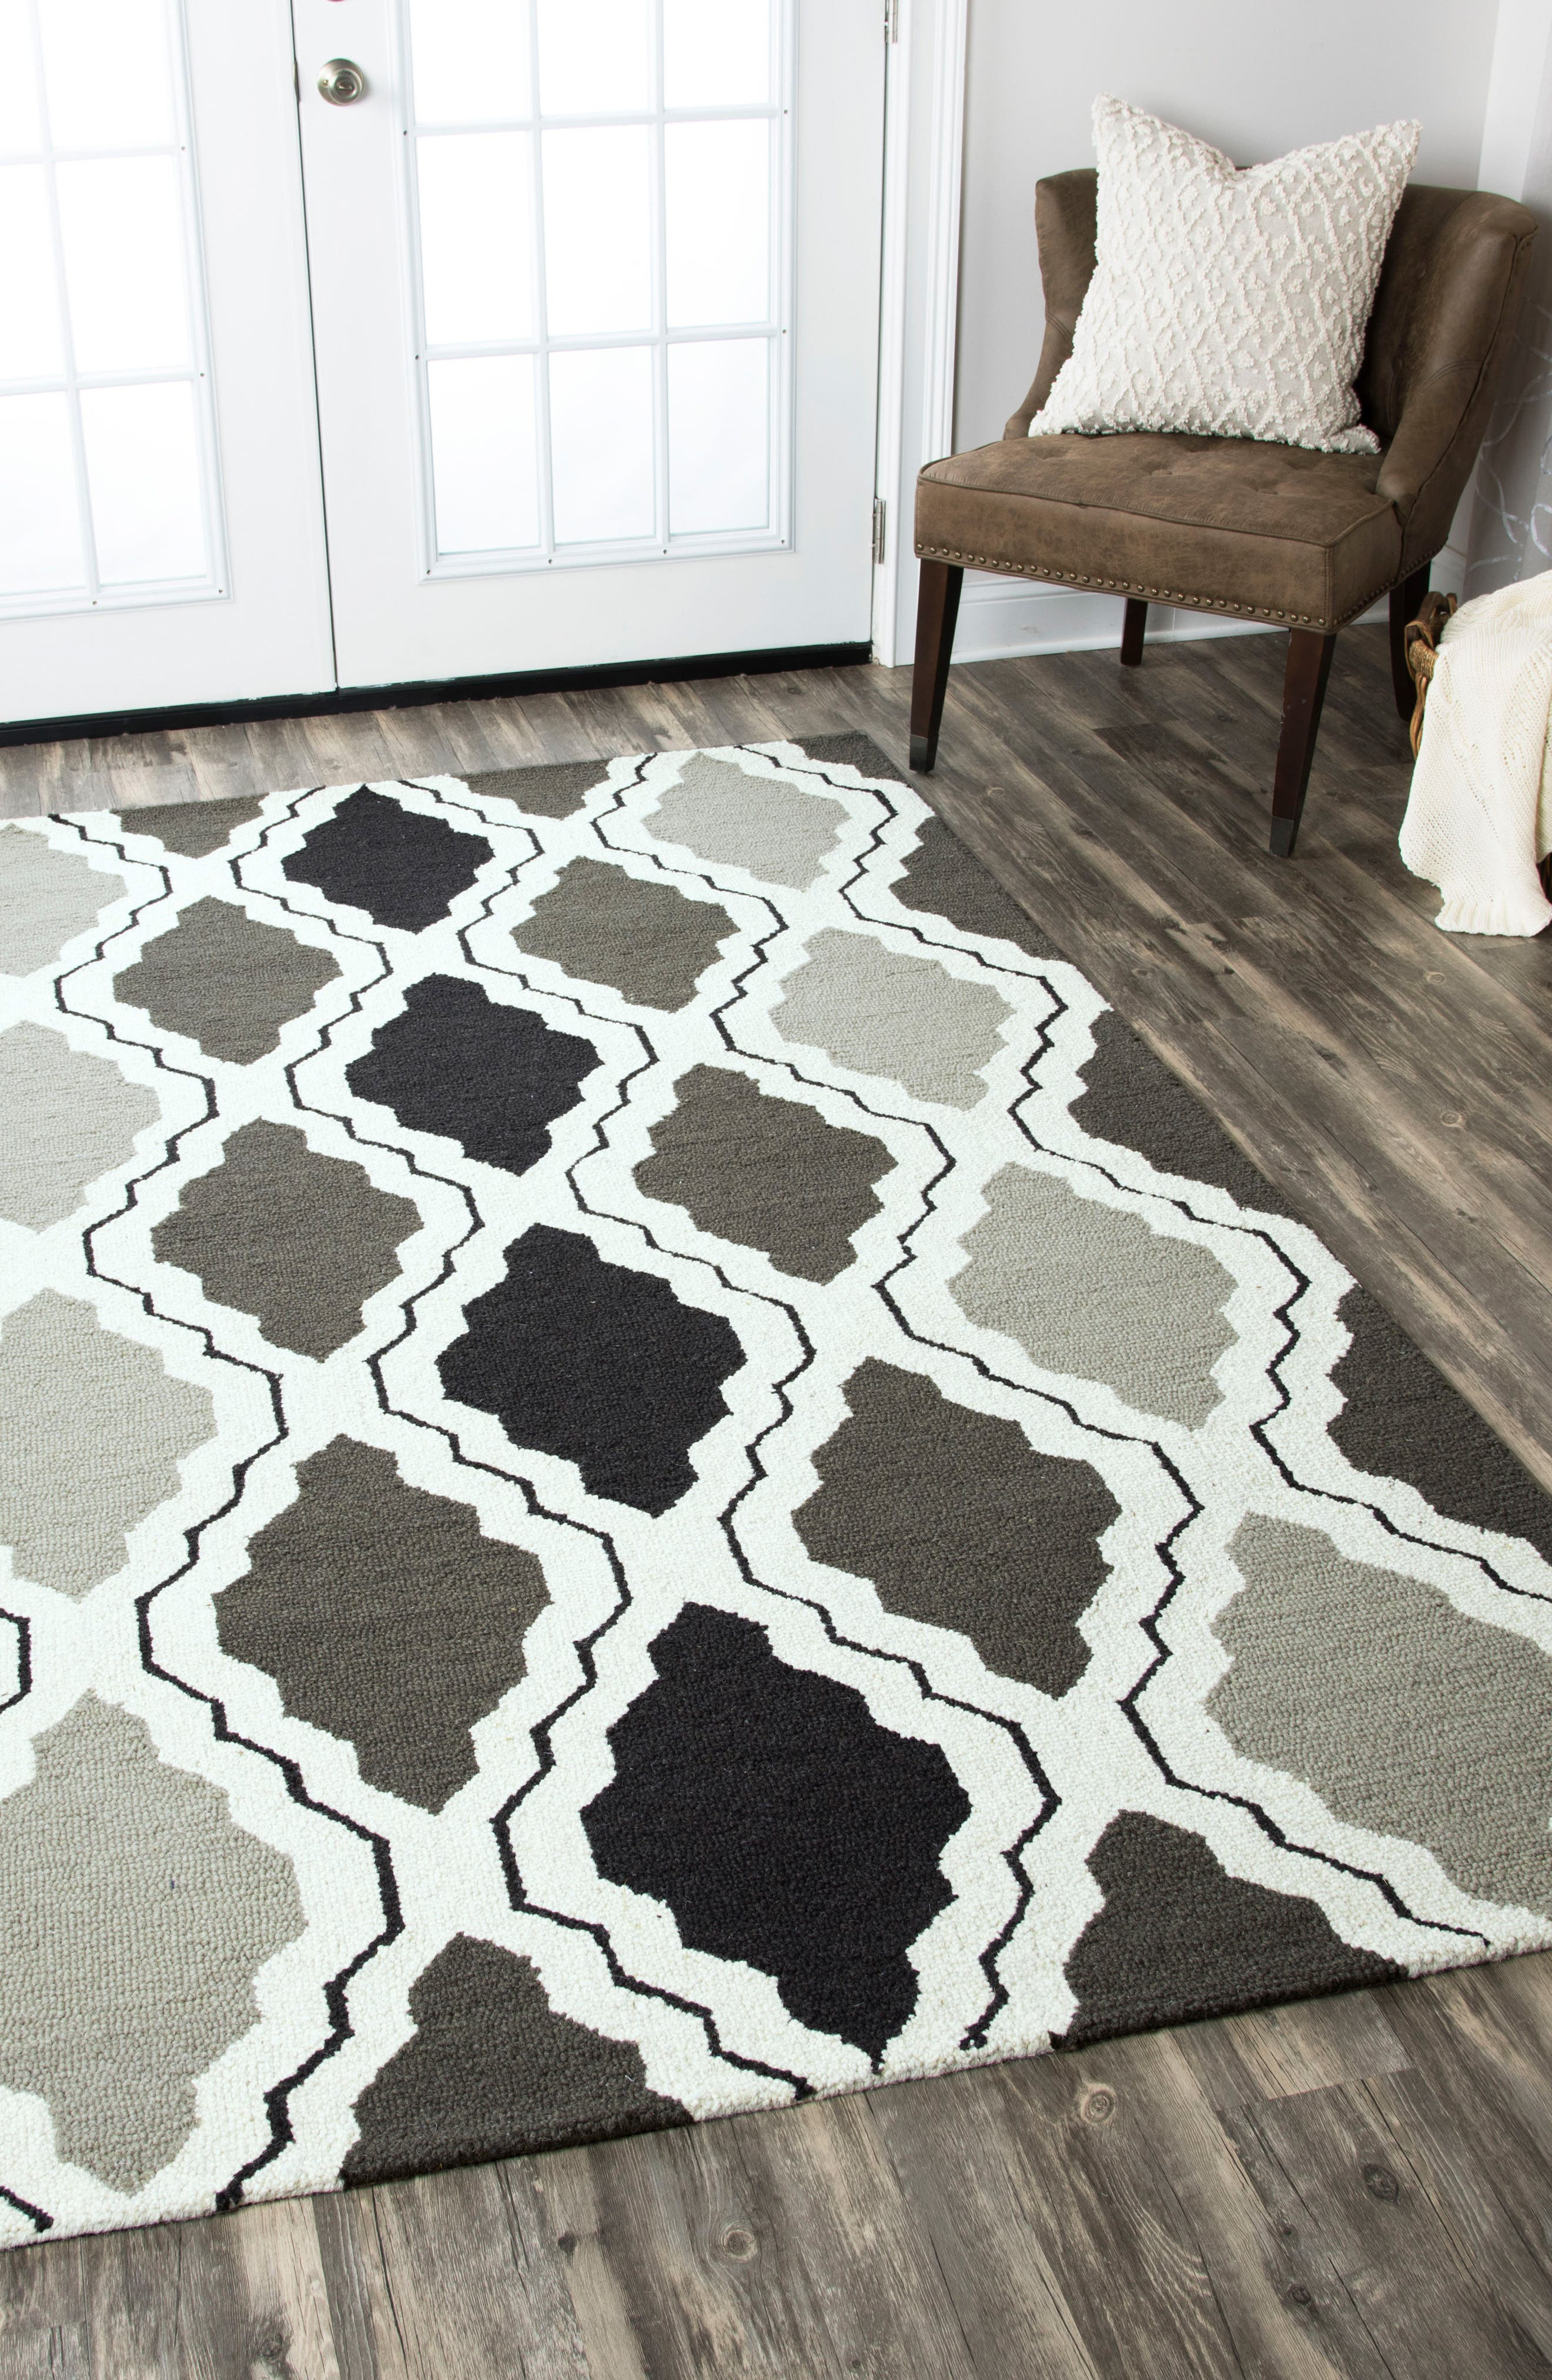 'Ogee' Wool Area Rug,                             Alternate thumbnail 7, color,                             030